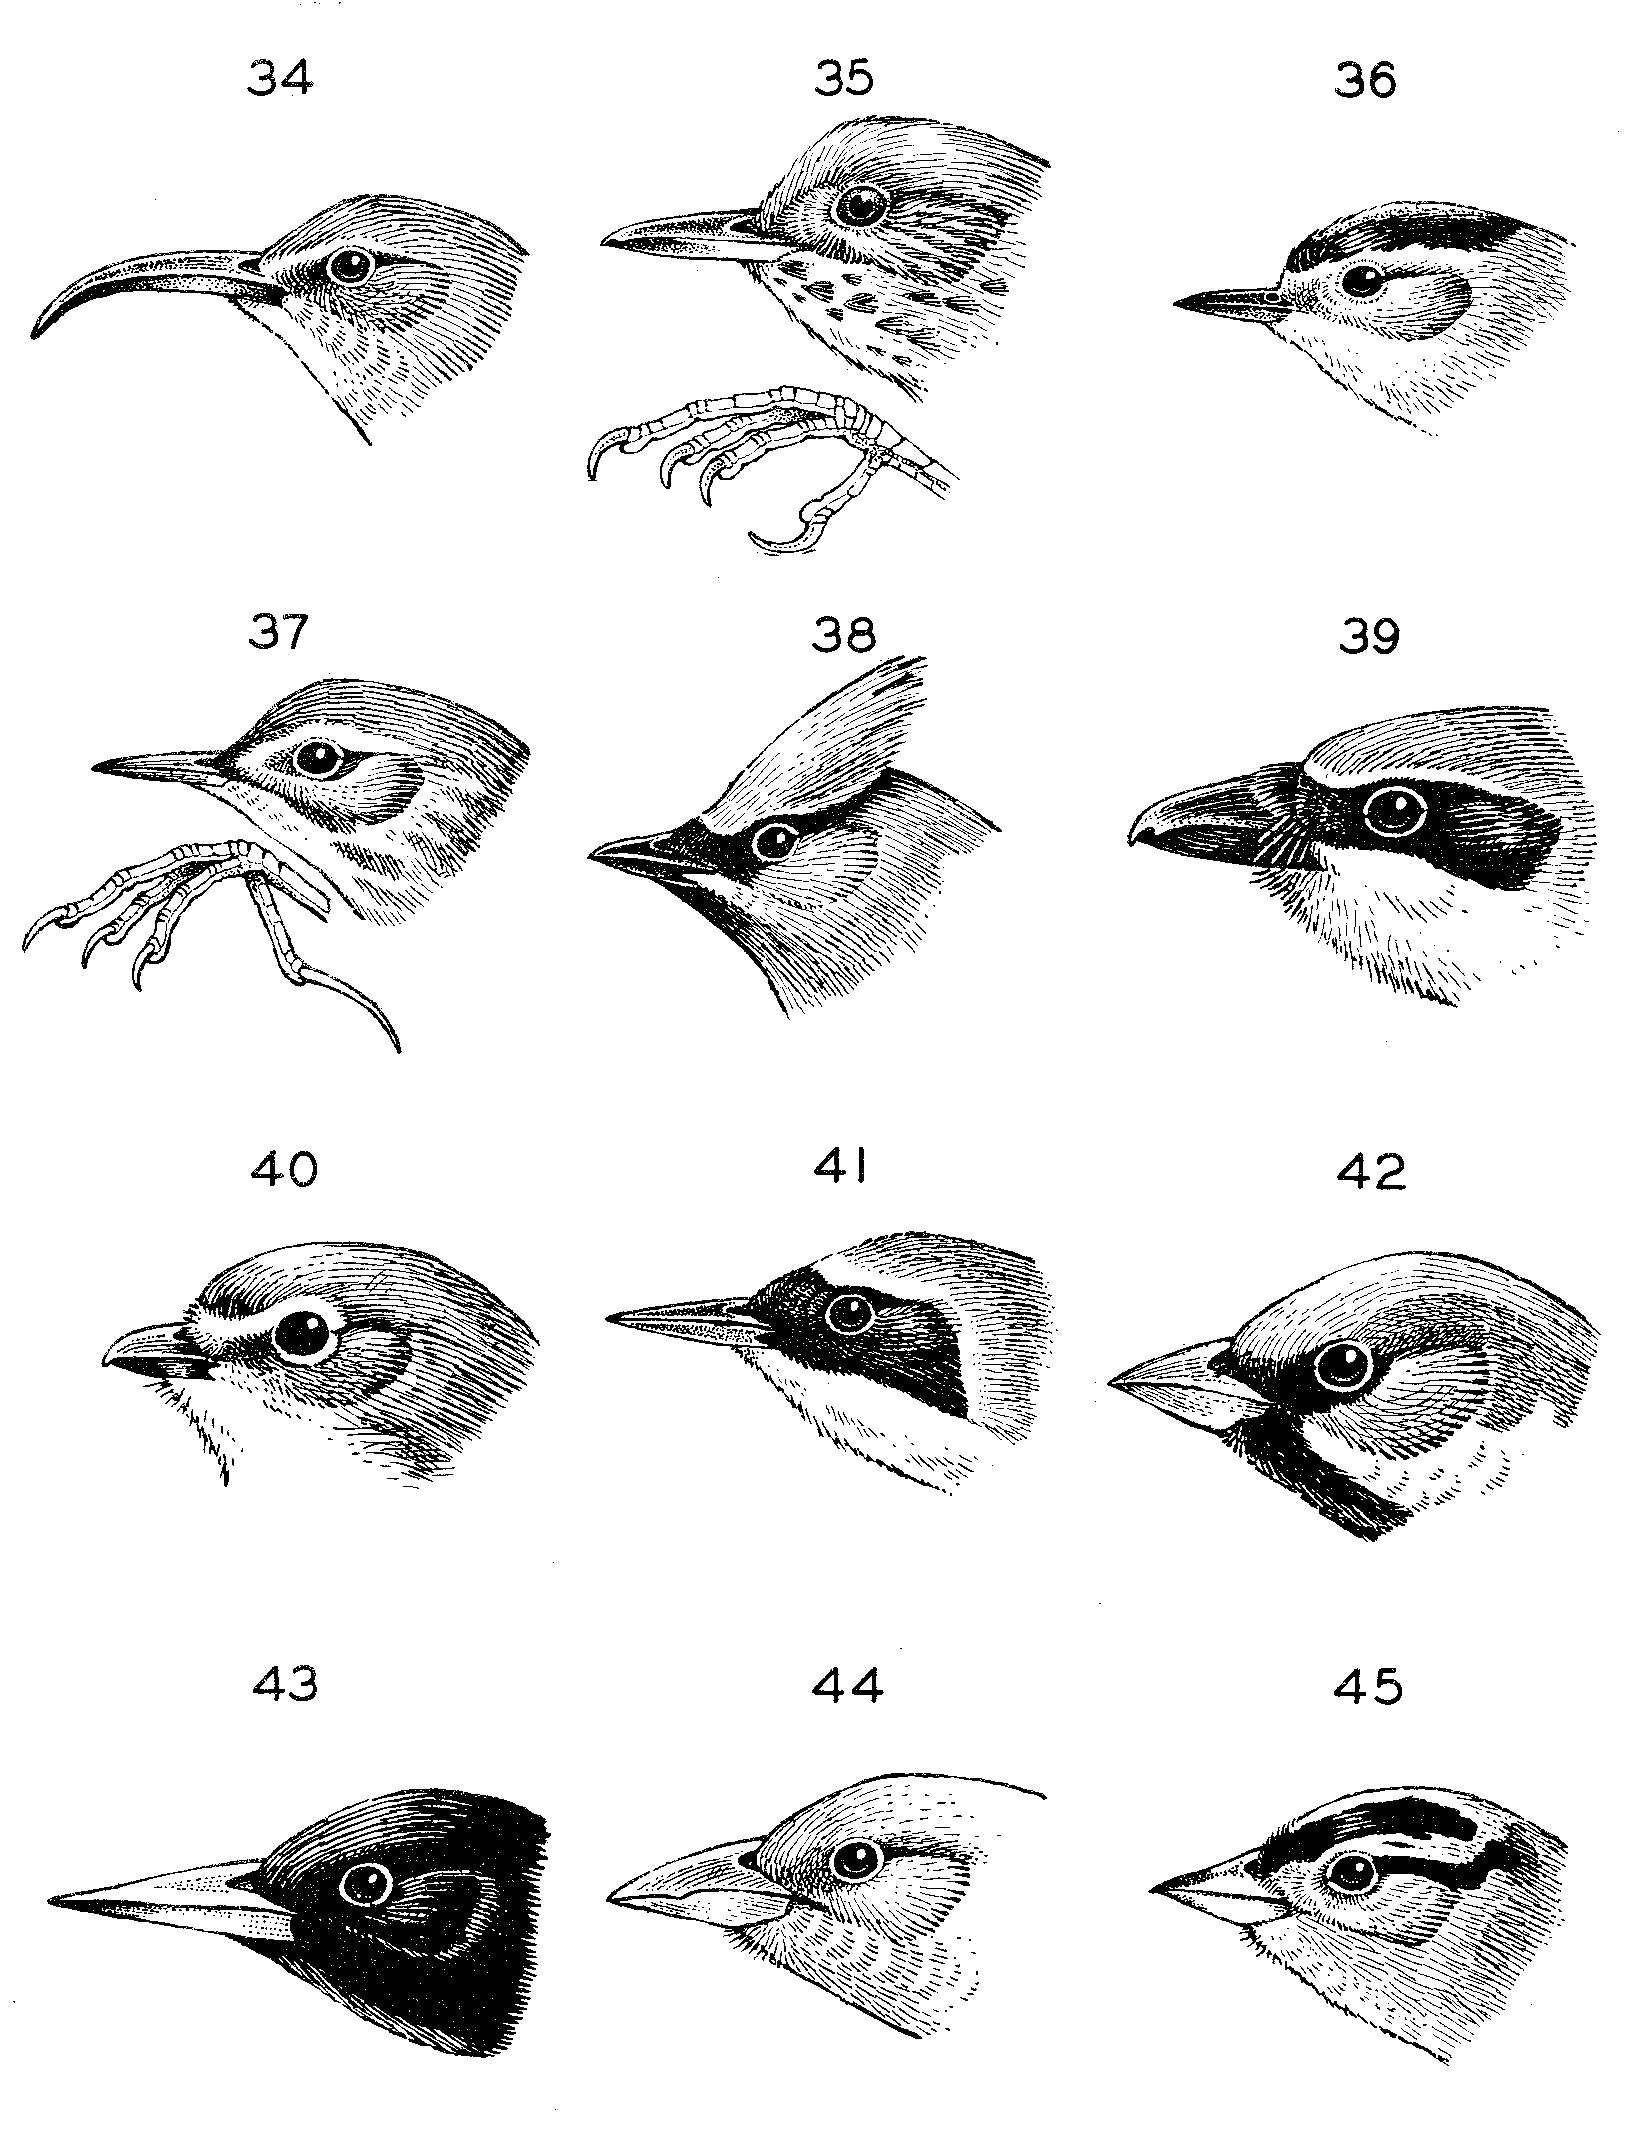 Birds Of Yosemite National Park Appendix I